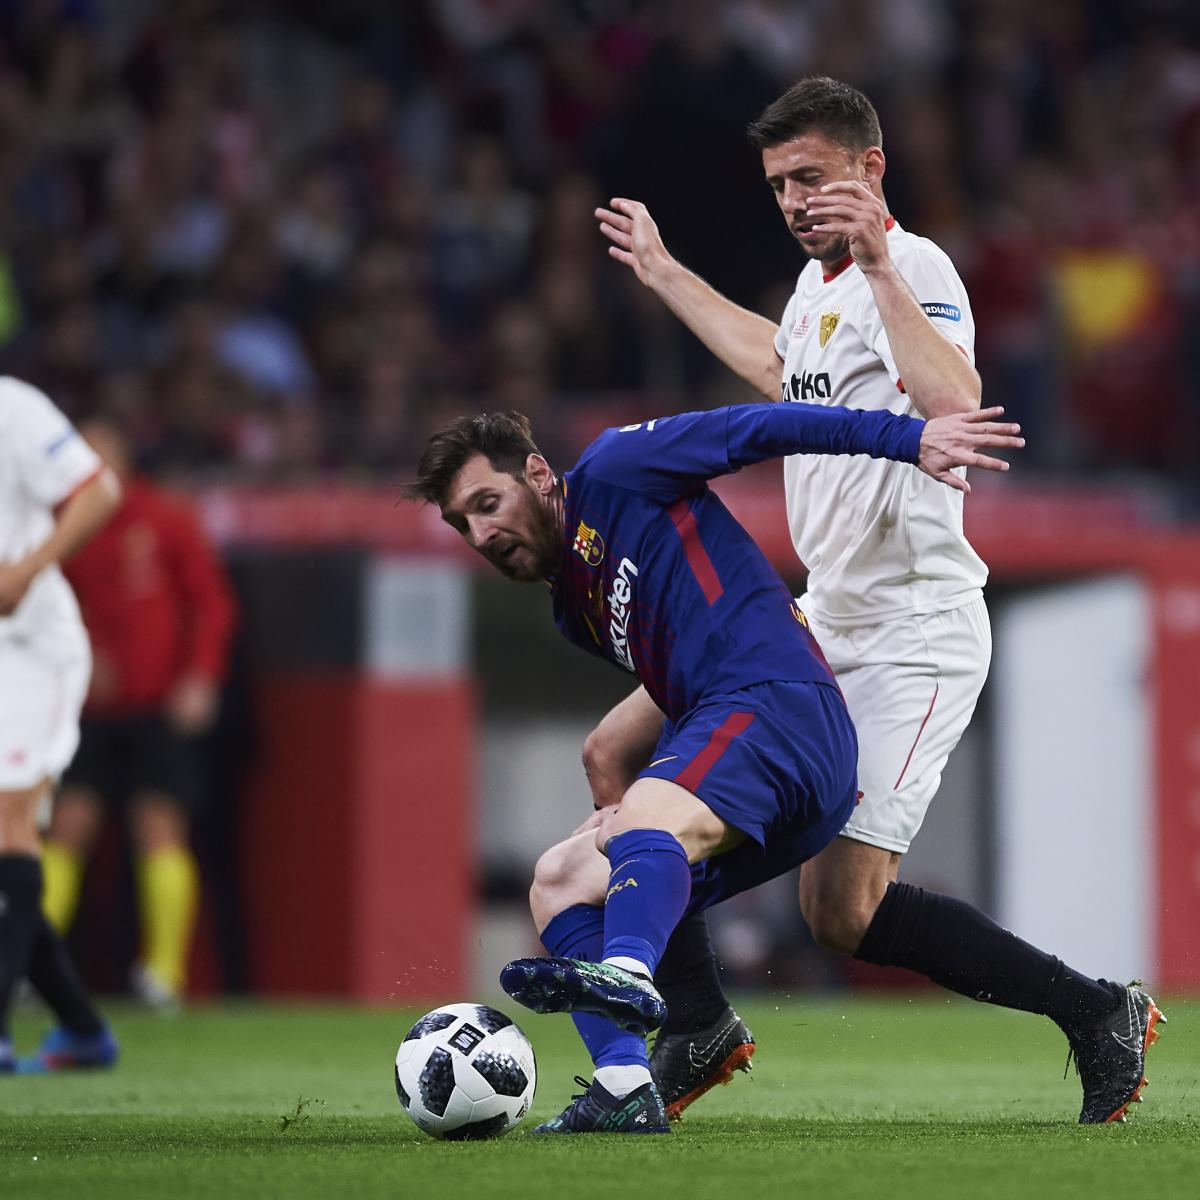 Barcelona Transfer News: Clement Lenglet Deal Close in Latest Rumours